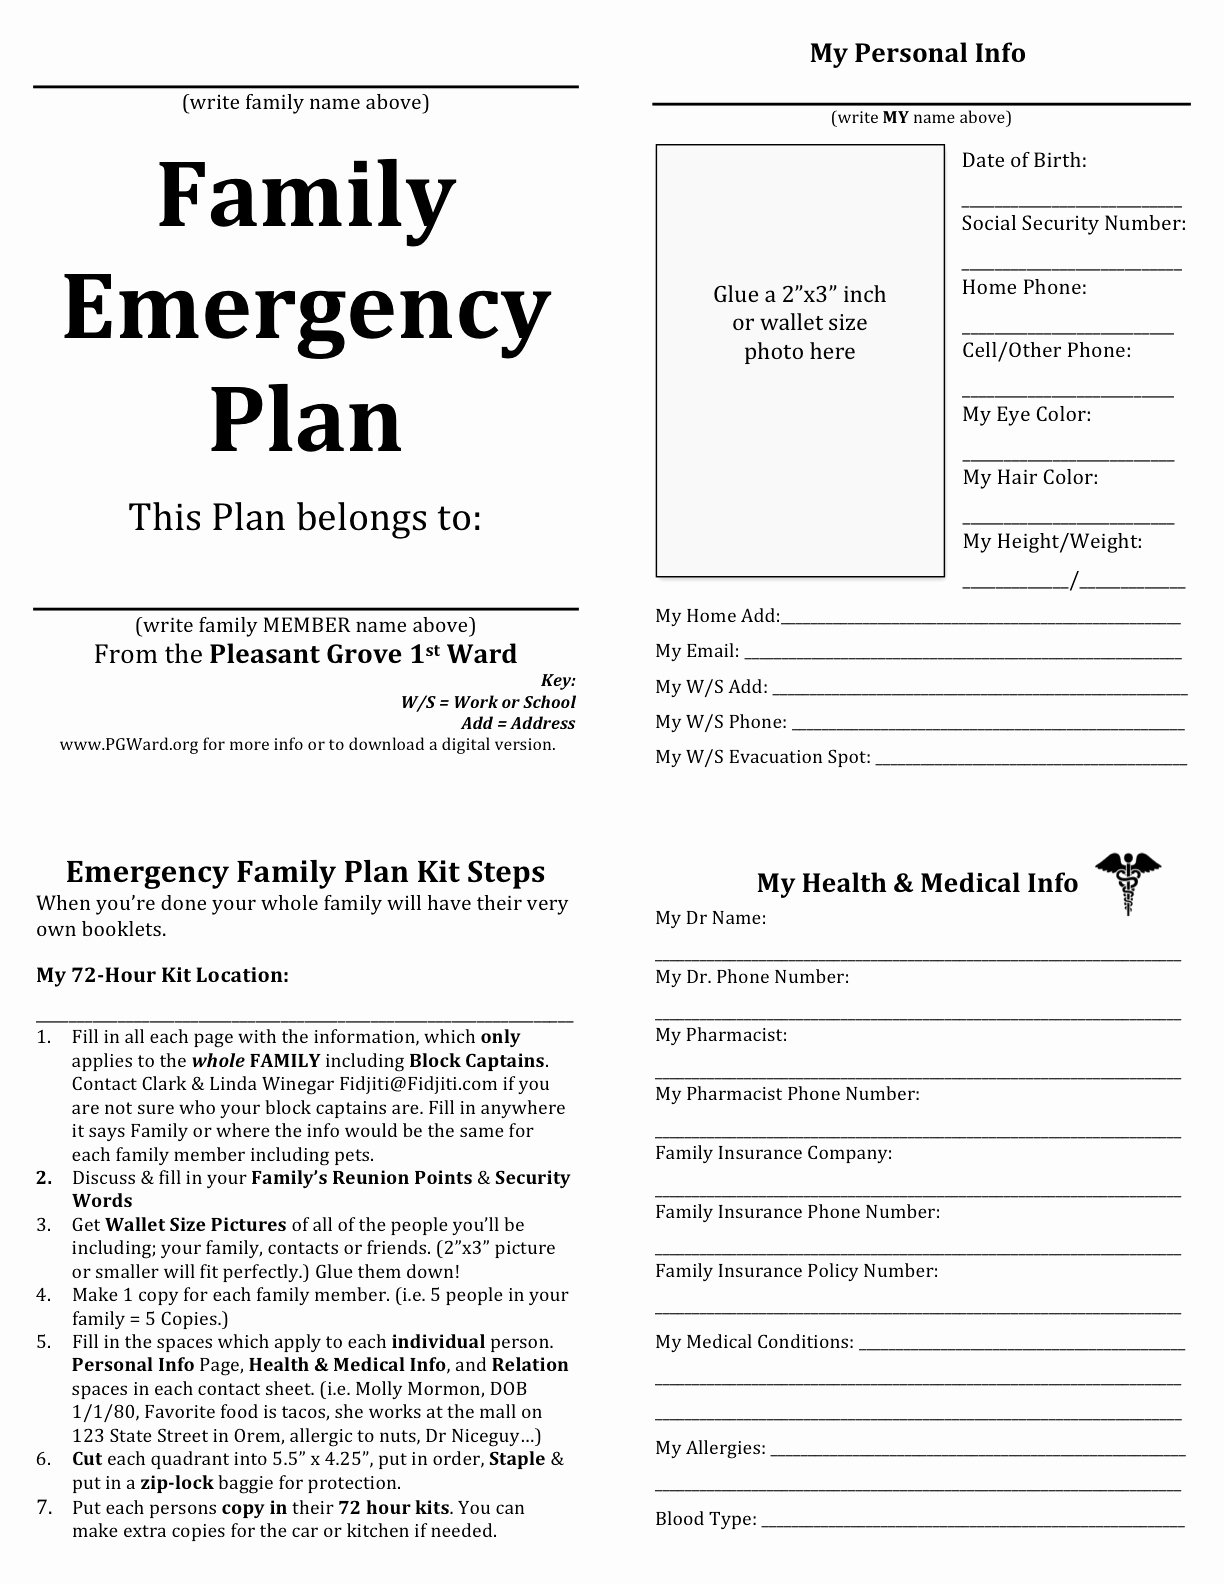 Family Emergency Preparedness Plan Template Inspirational Emergency Planning Quotes Quotesgram